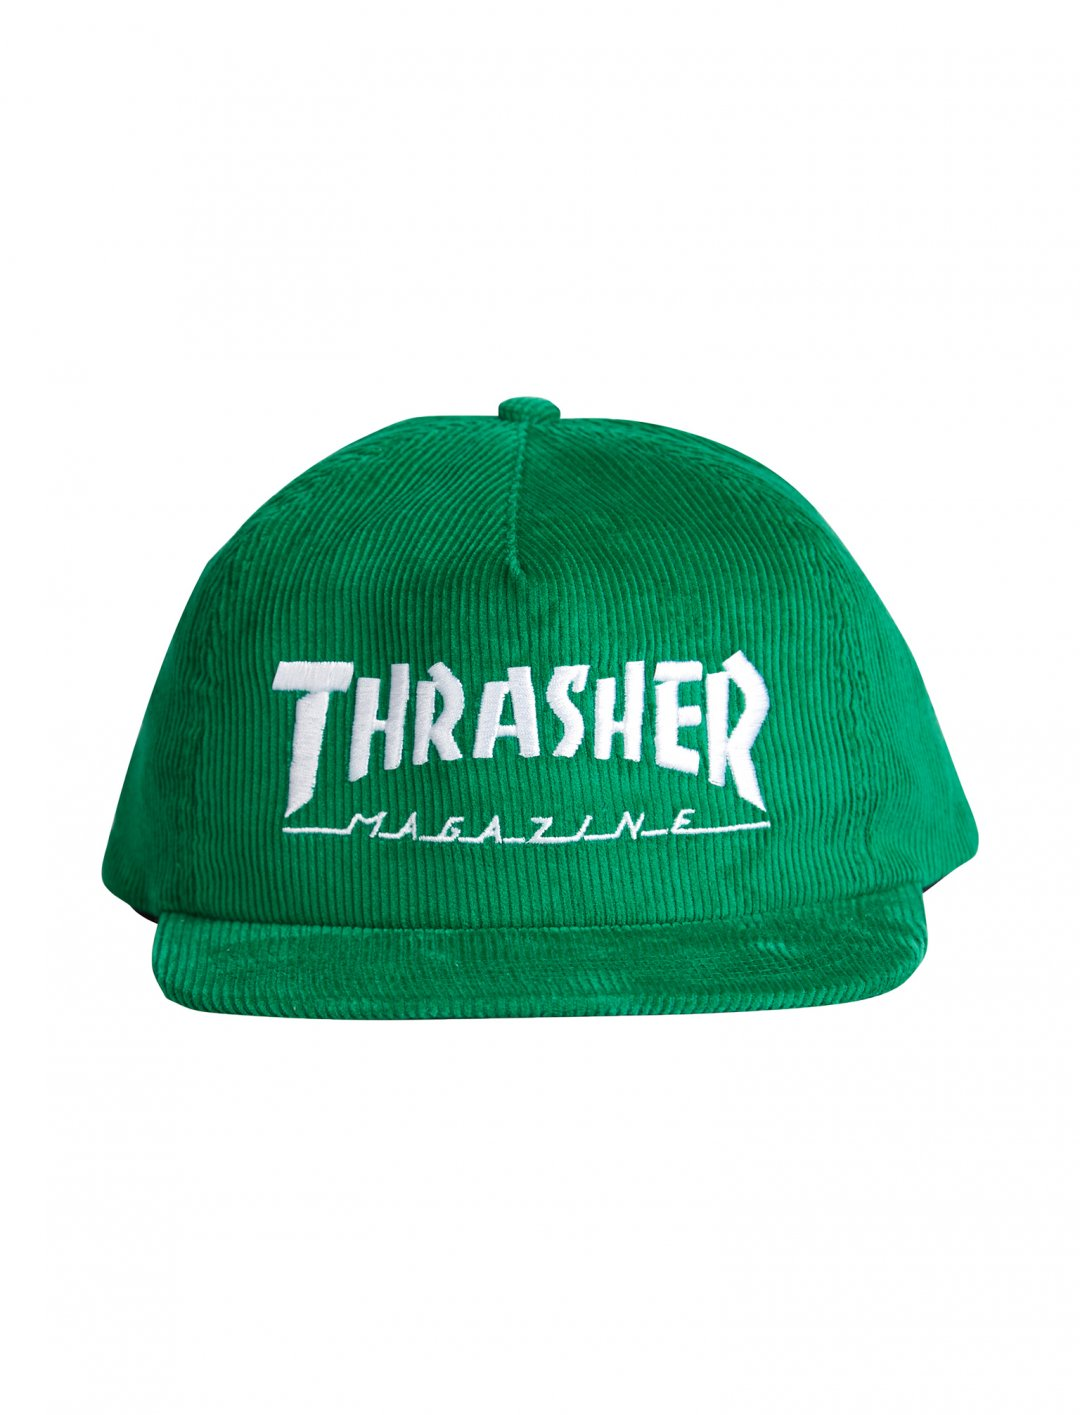 "Lil Wayne's Snapback Cap In Green {""id"":16,""product_section_id"":1,""name"":""Accessories"",""order"":15} Thrasher"